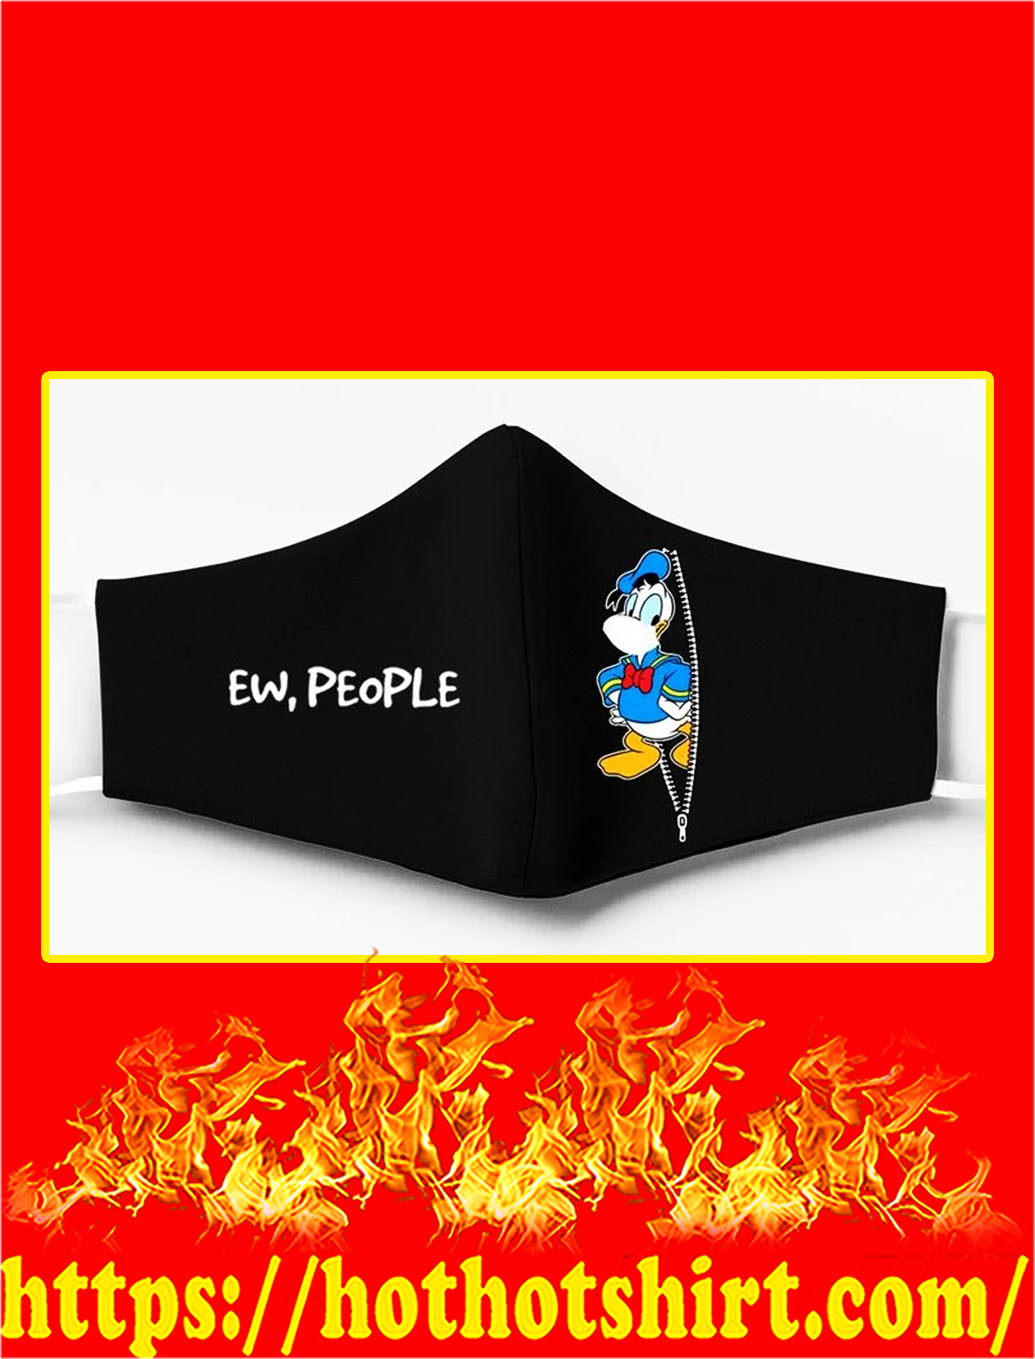 Donald duck ew people face mask - pic 1